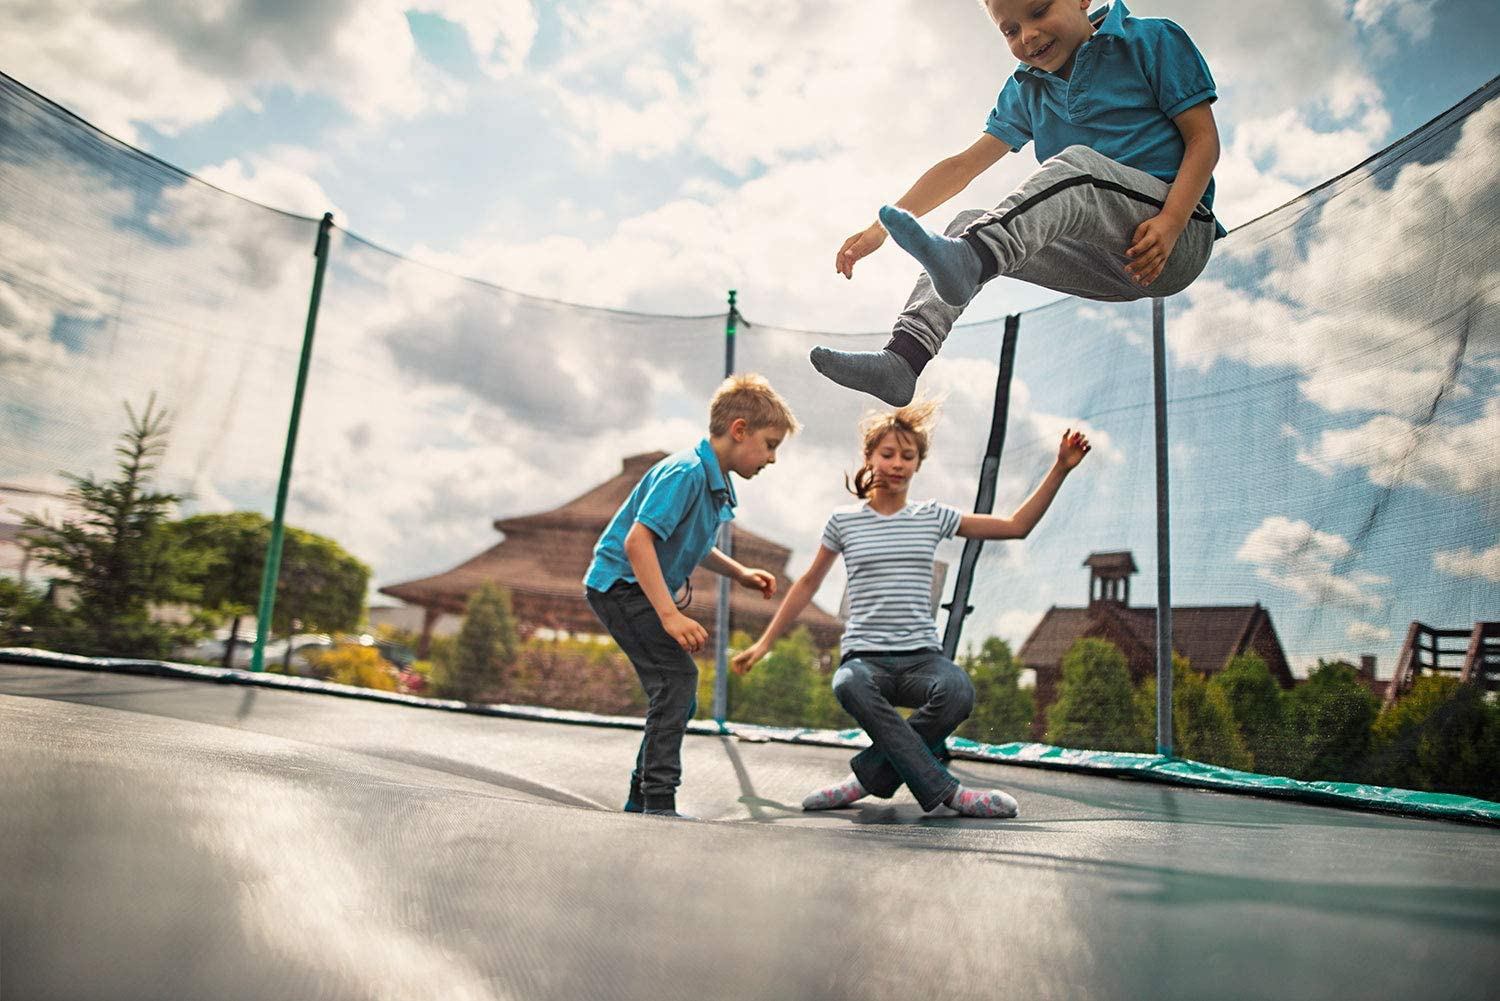 This is an image of 3 kids playing on 14FT Trampoline with Safety Enclosure Net